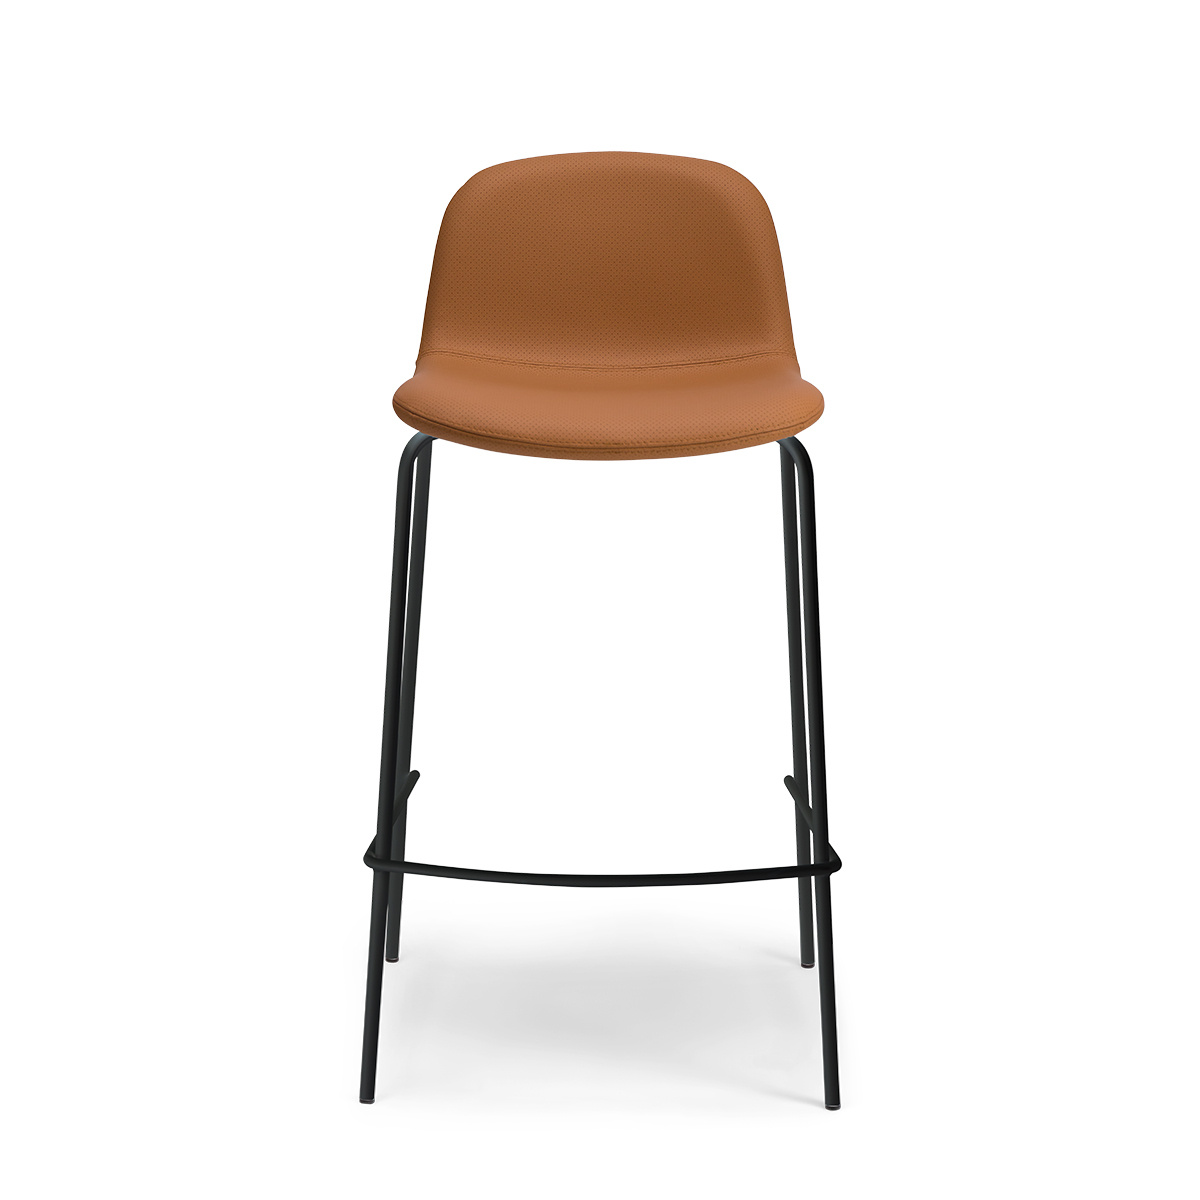 Monza barstool in caramel perforated leather with a black frame